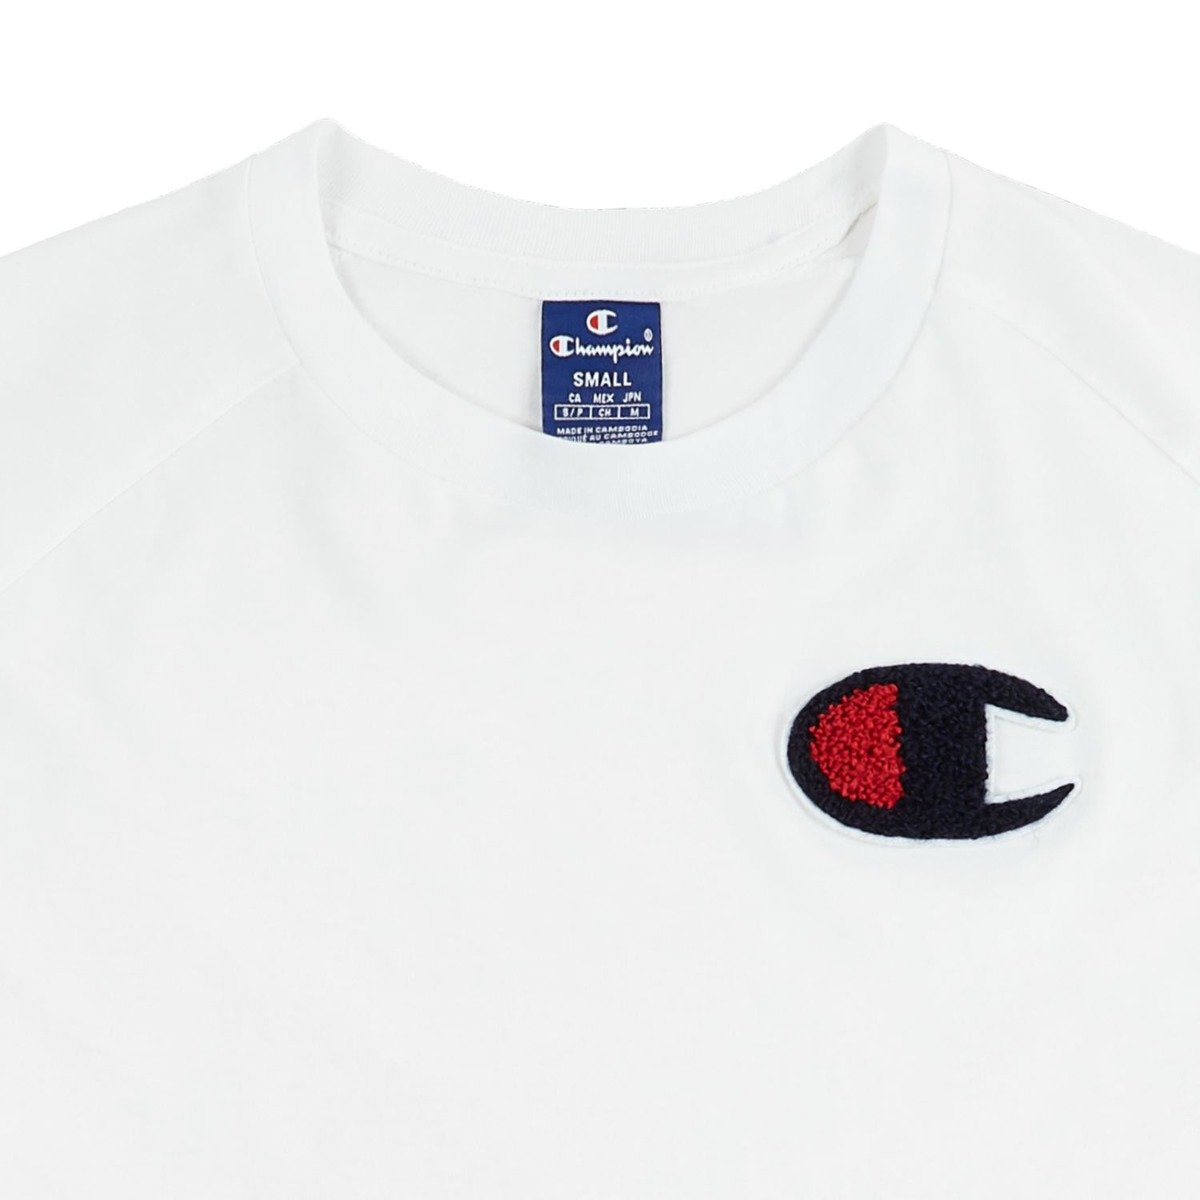 eec682008 champion chenille C logo t-shirt white | Clothes \ T-shirts \ T ...